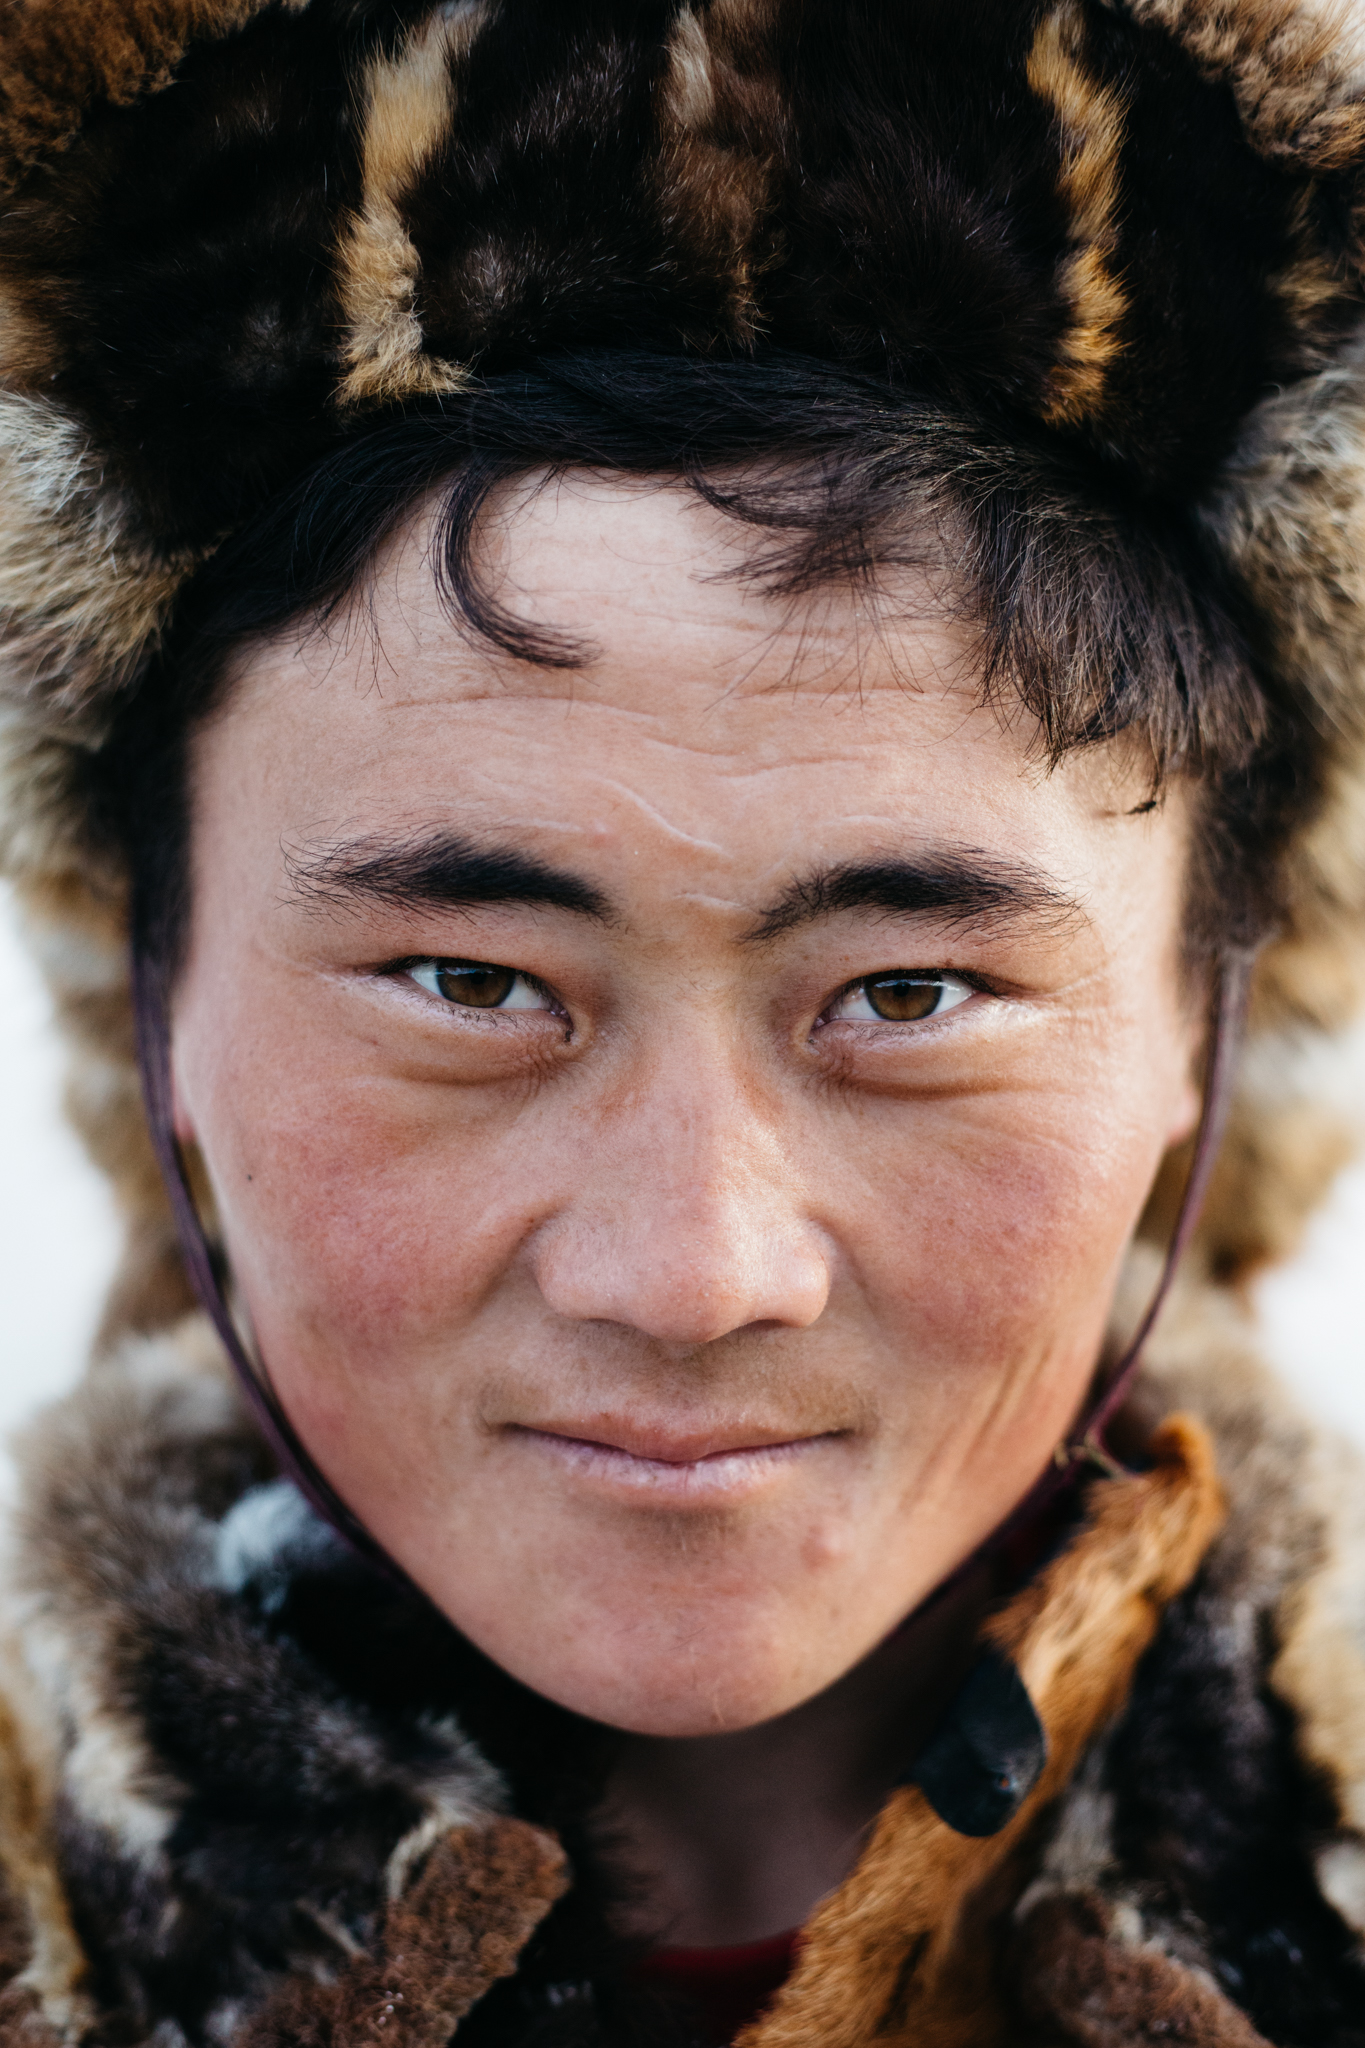 ellamackphotos_mongolia_portraits_website-2.jpg